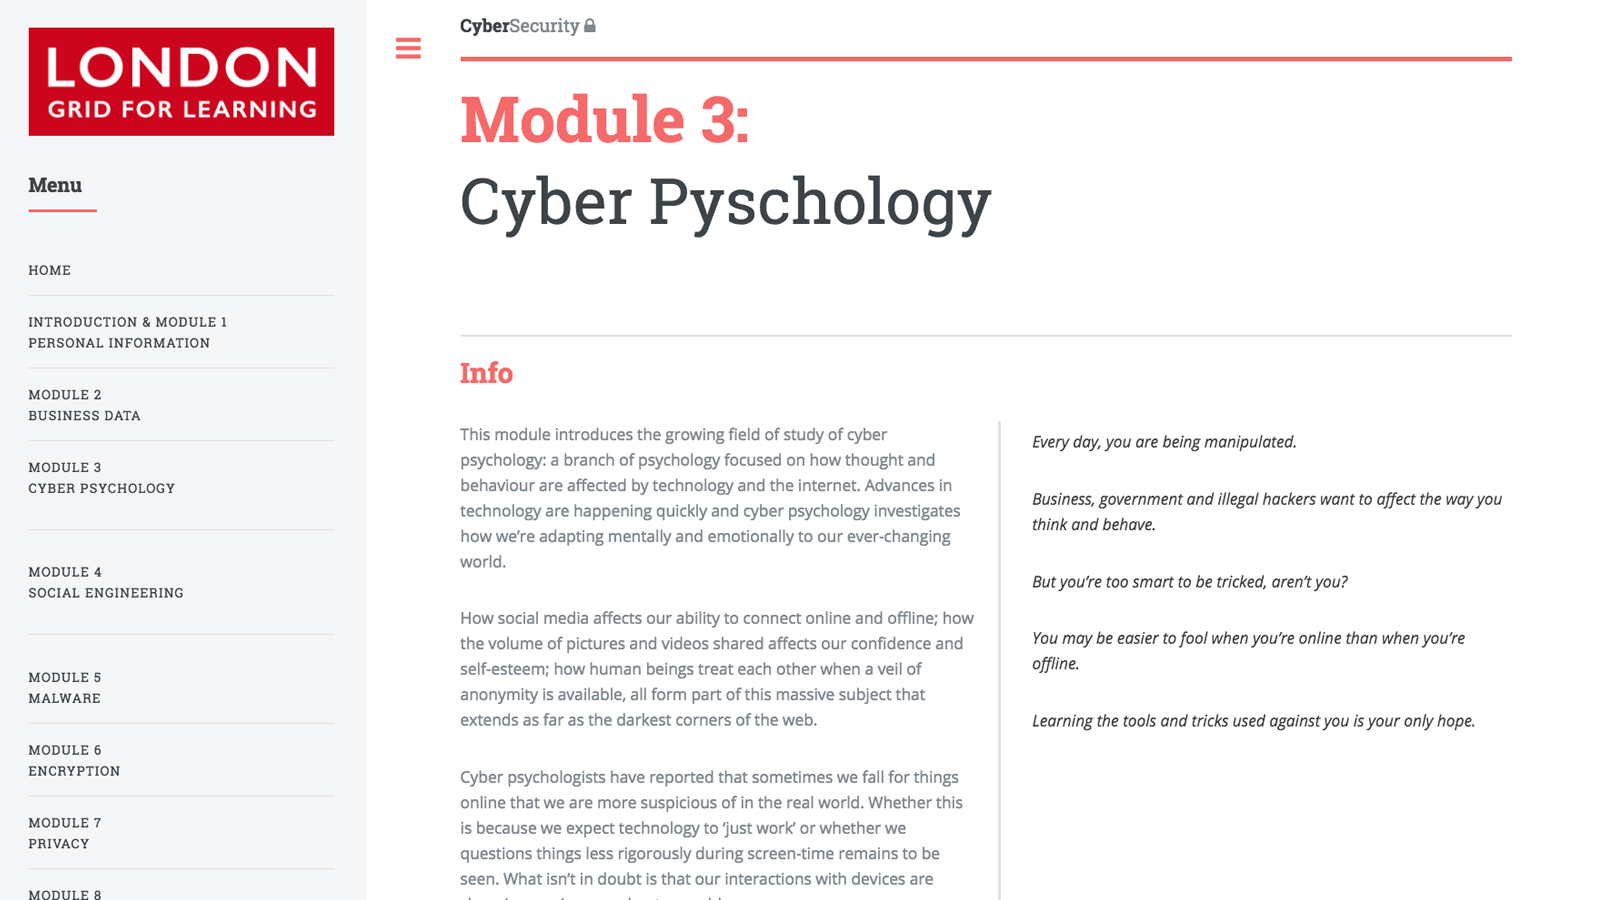 CyberSafe summary page - London Grid for Learning